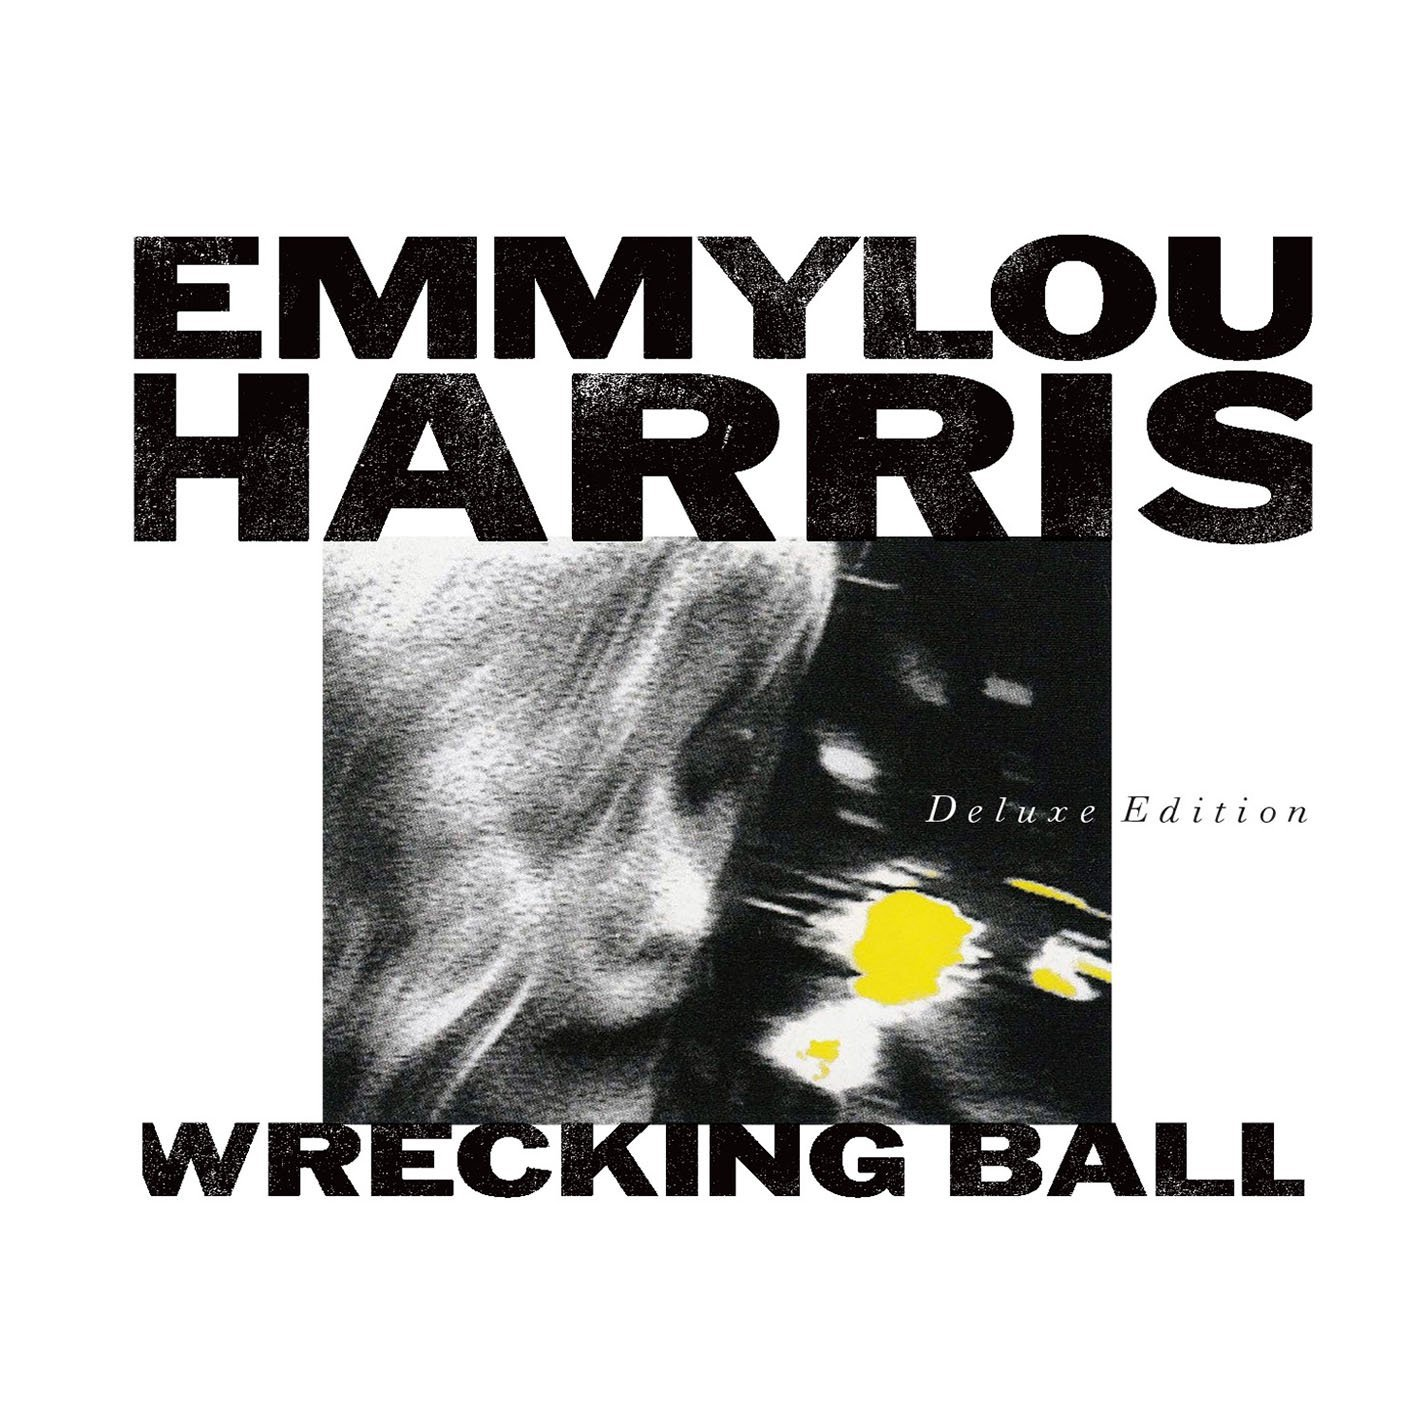 Emmylou Harris - Wrecking Ball (Deluxe Edition)